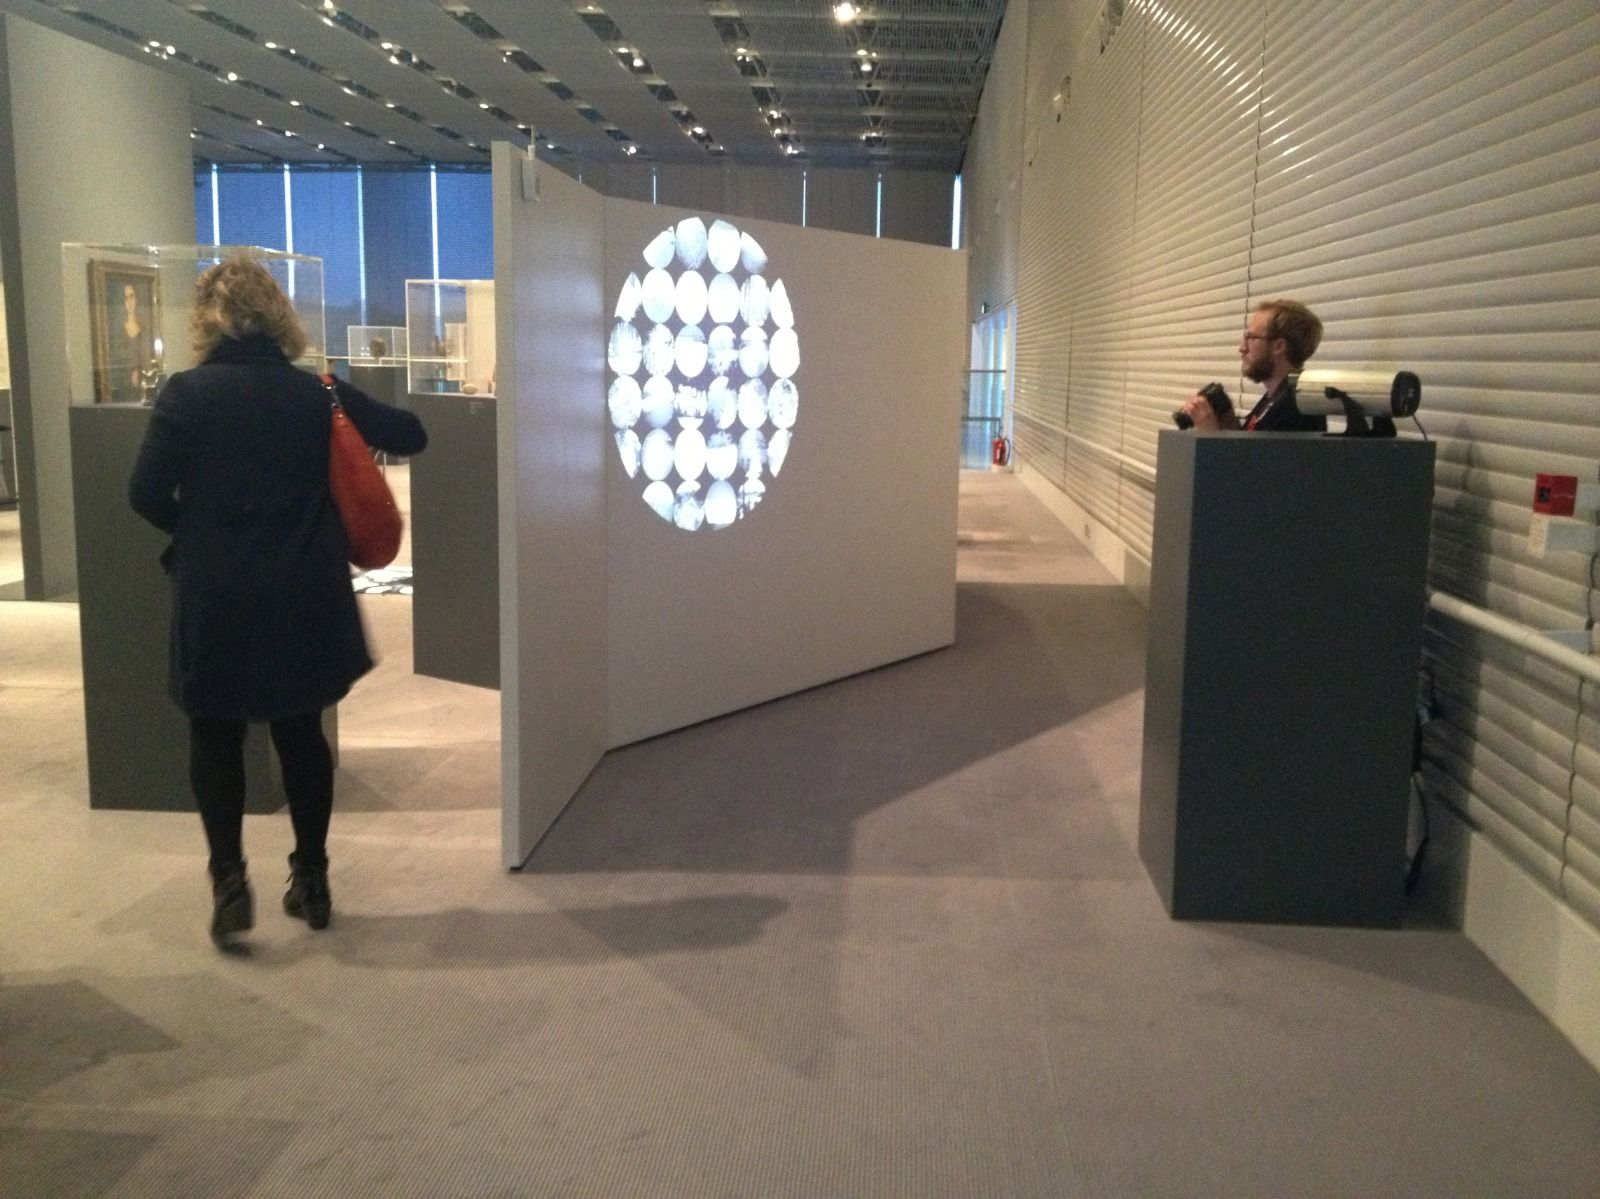 (Untitled) 2012 Projection in The Sainsbury Centre for Visual Arts